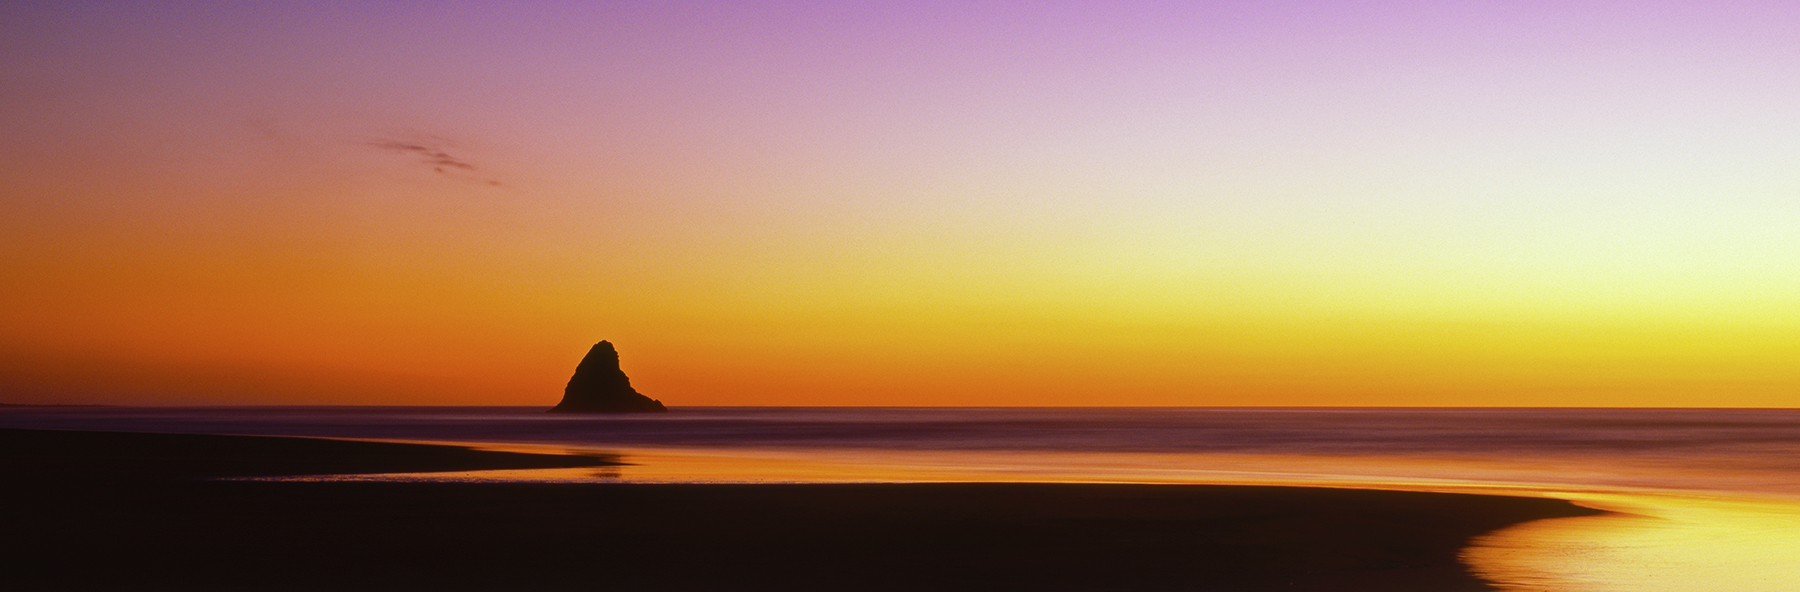 Alone, Karekare Beach, New Zealand. A Limited Edition Fine Art Landscape Photograph by Richard Hume